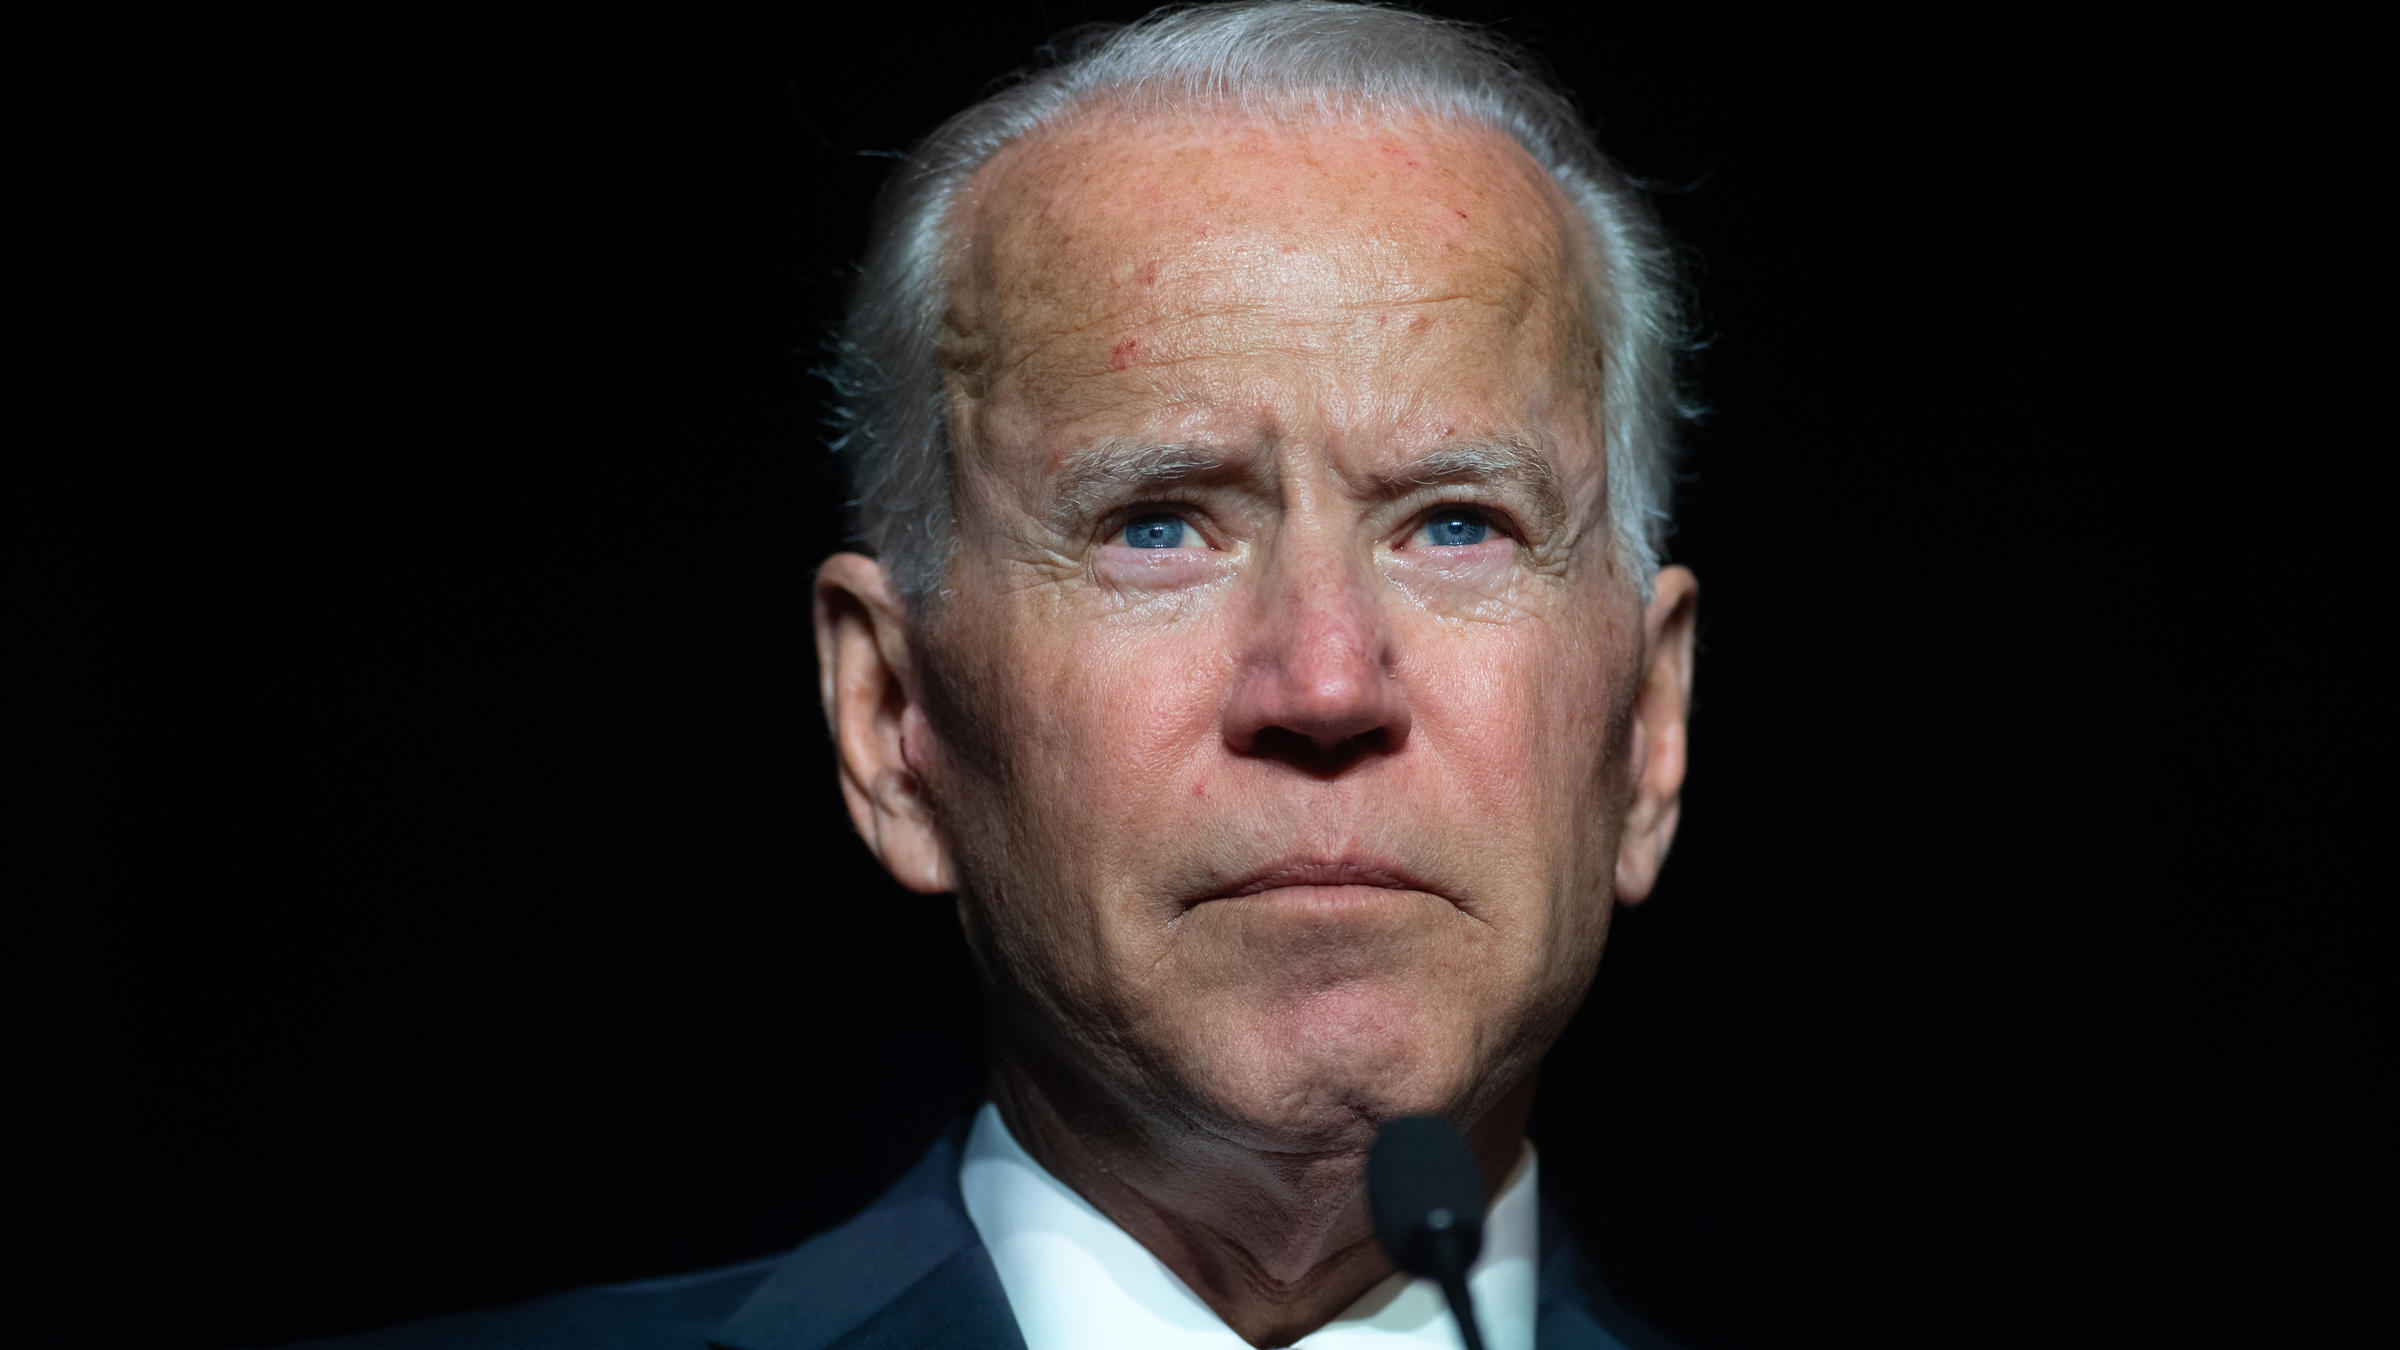 Biography Traces Political Mistakes And Personal Scars That Shaped Joe Biden Npr Illinois